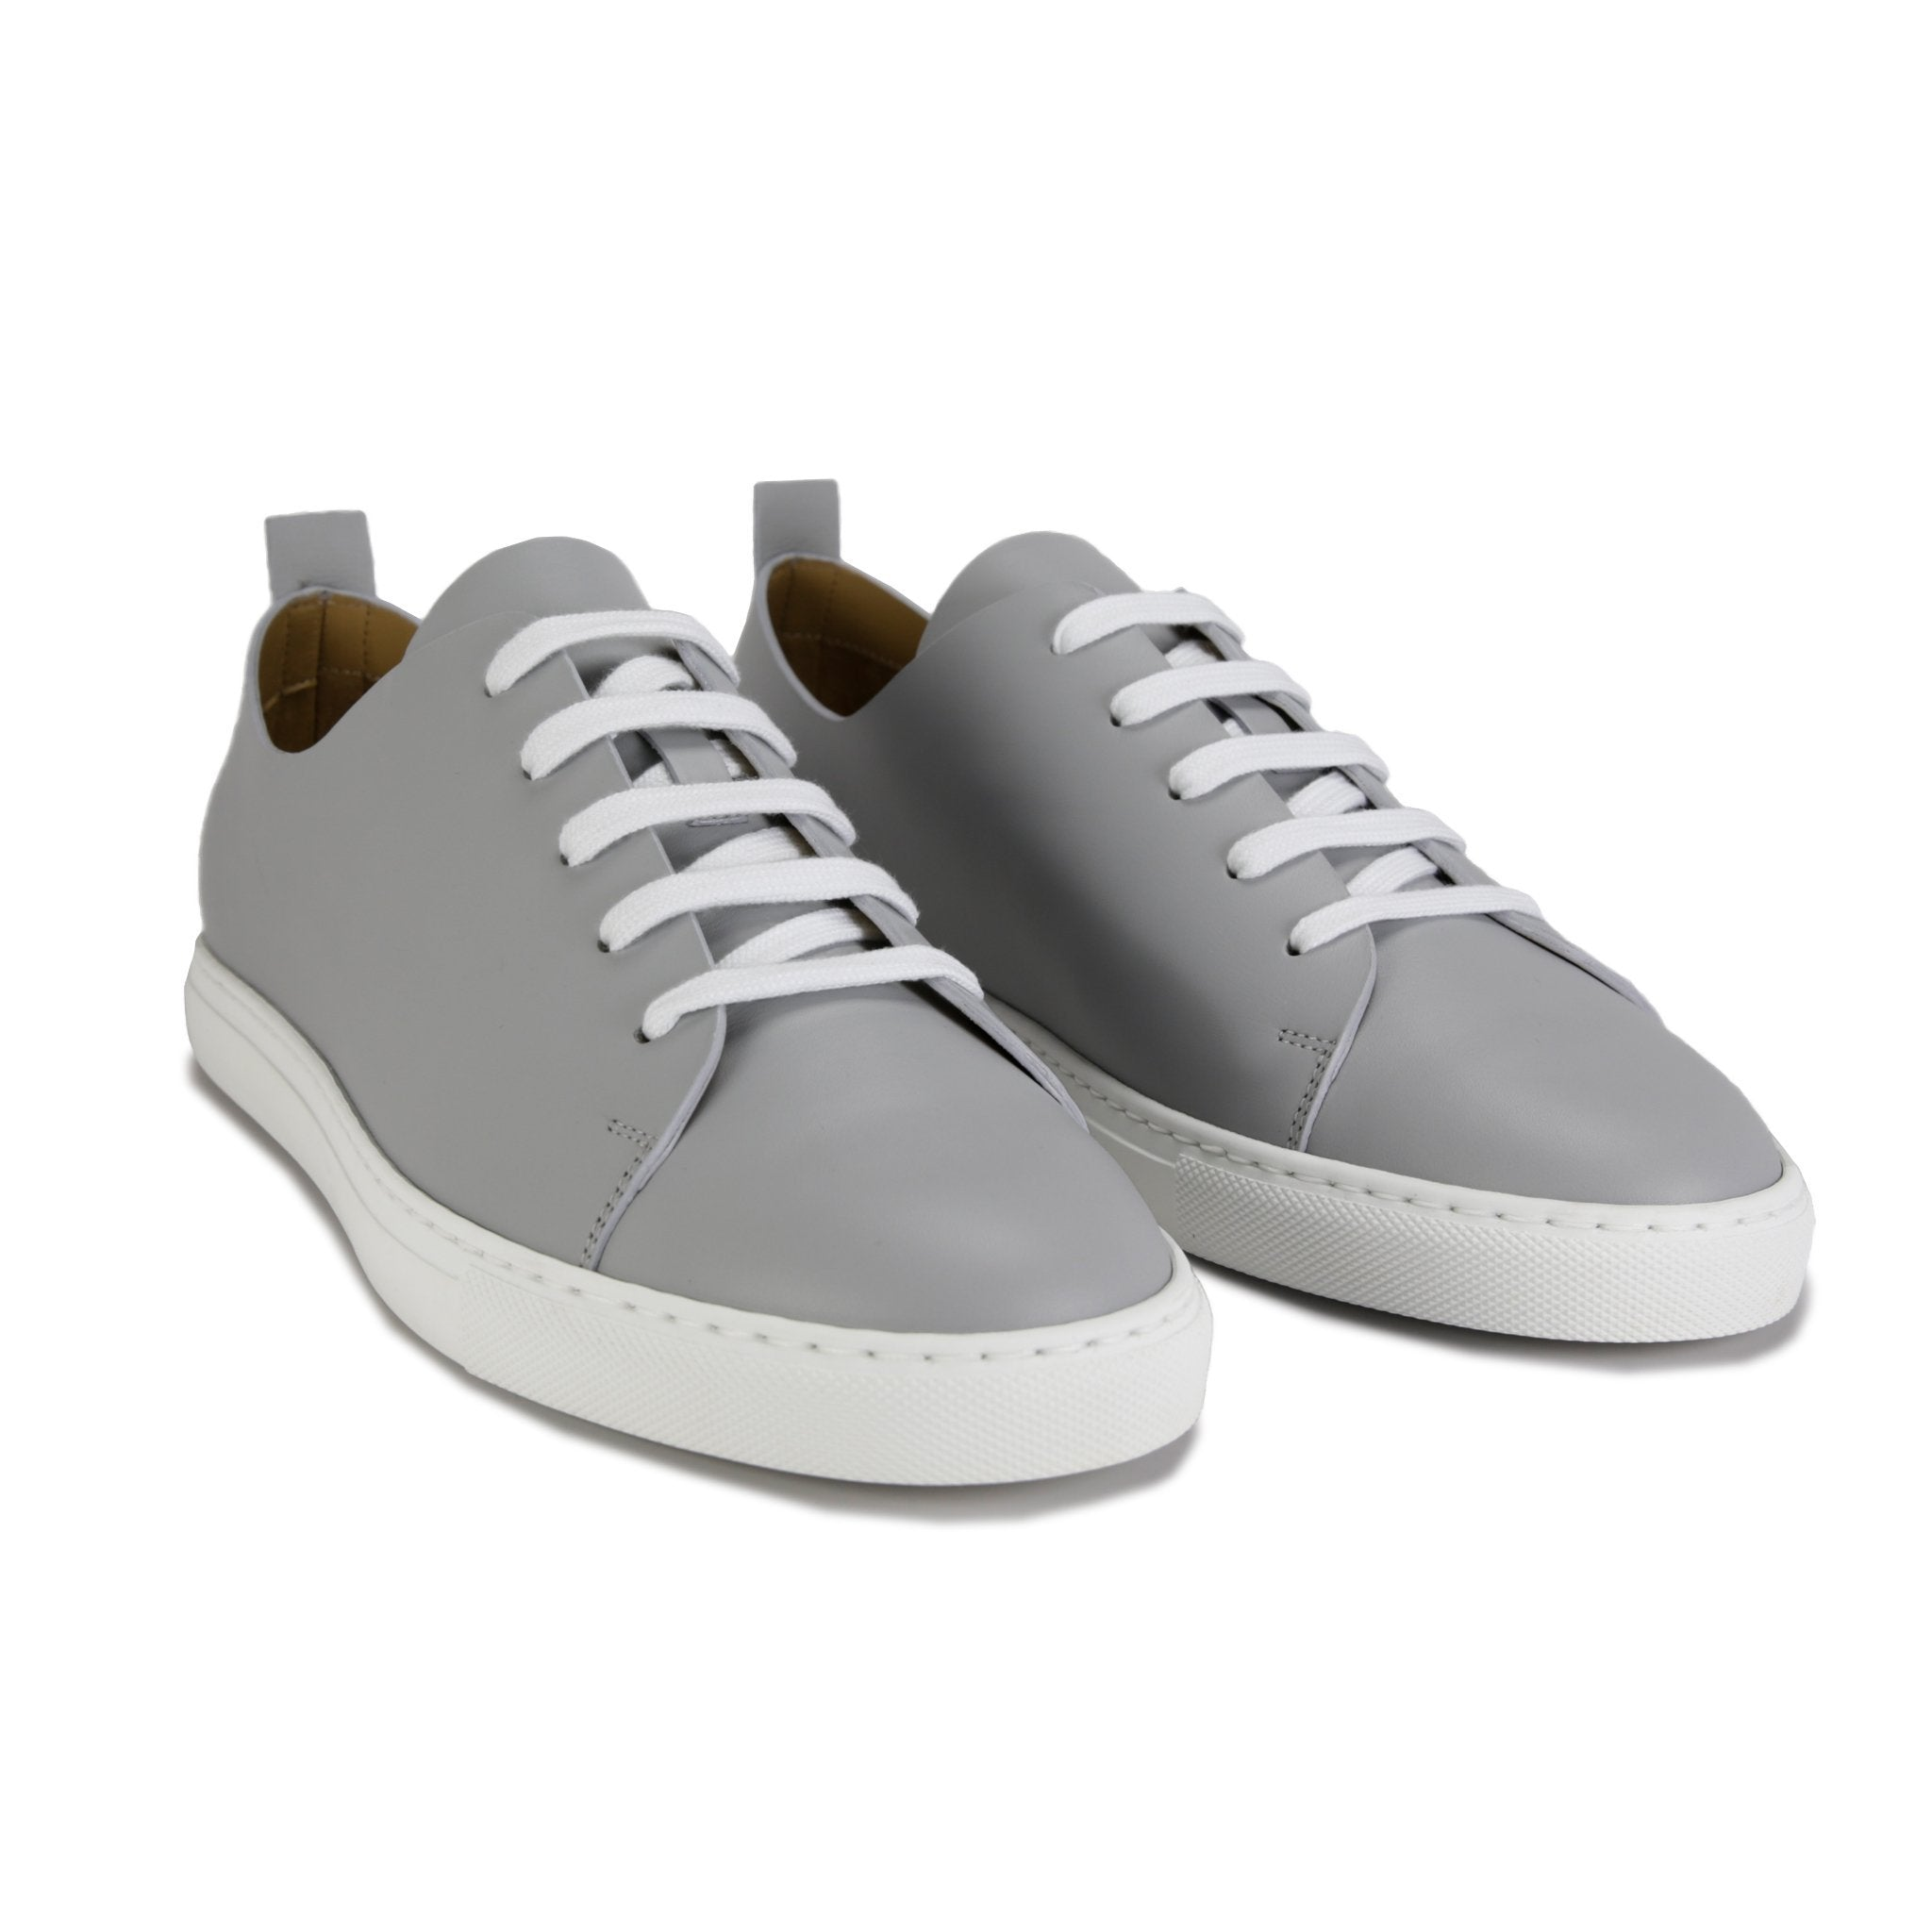 CAPALBIO - Pompeii Grigio, VIAJIYU - Women's Hand Made Sustainable Luxury Shoes. Made in Italy. Made to Order.